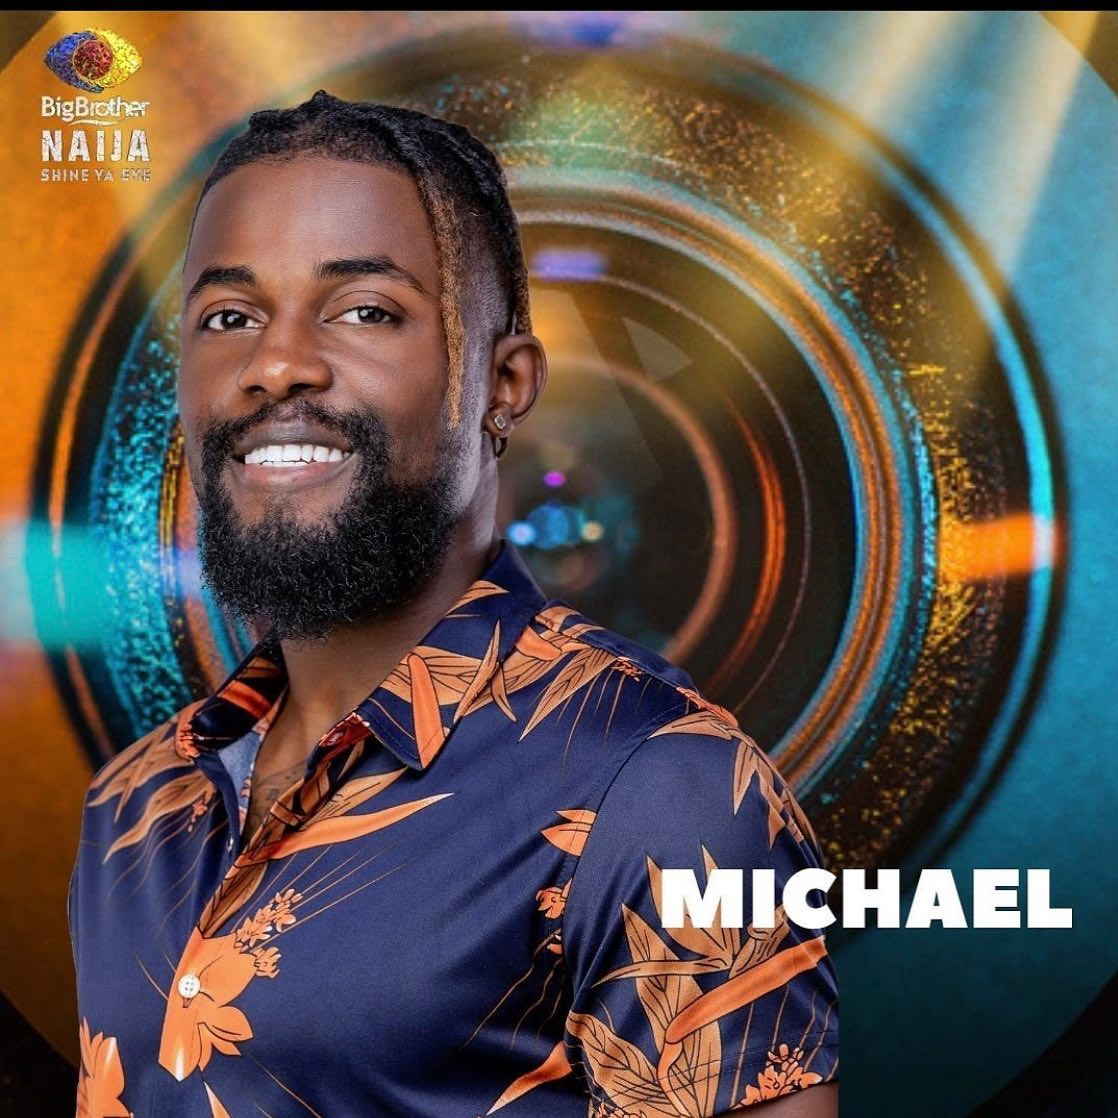 michaelngeneofficial 20210810 0001